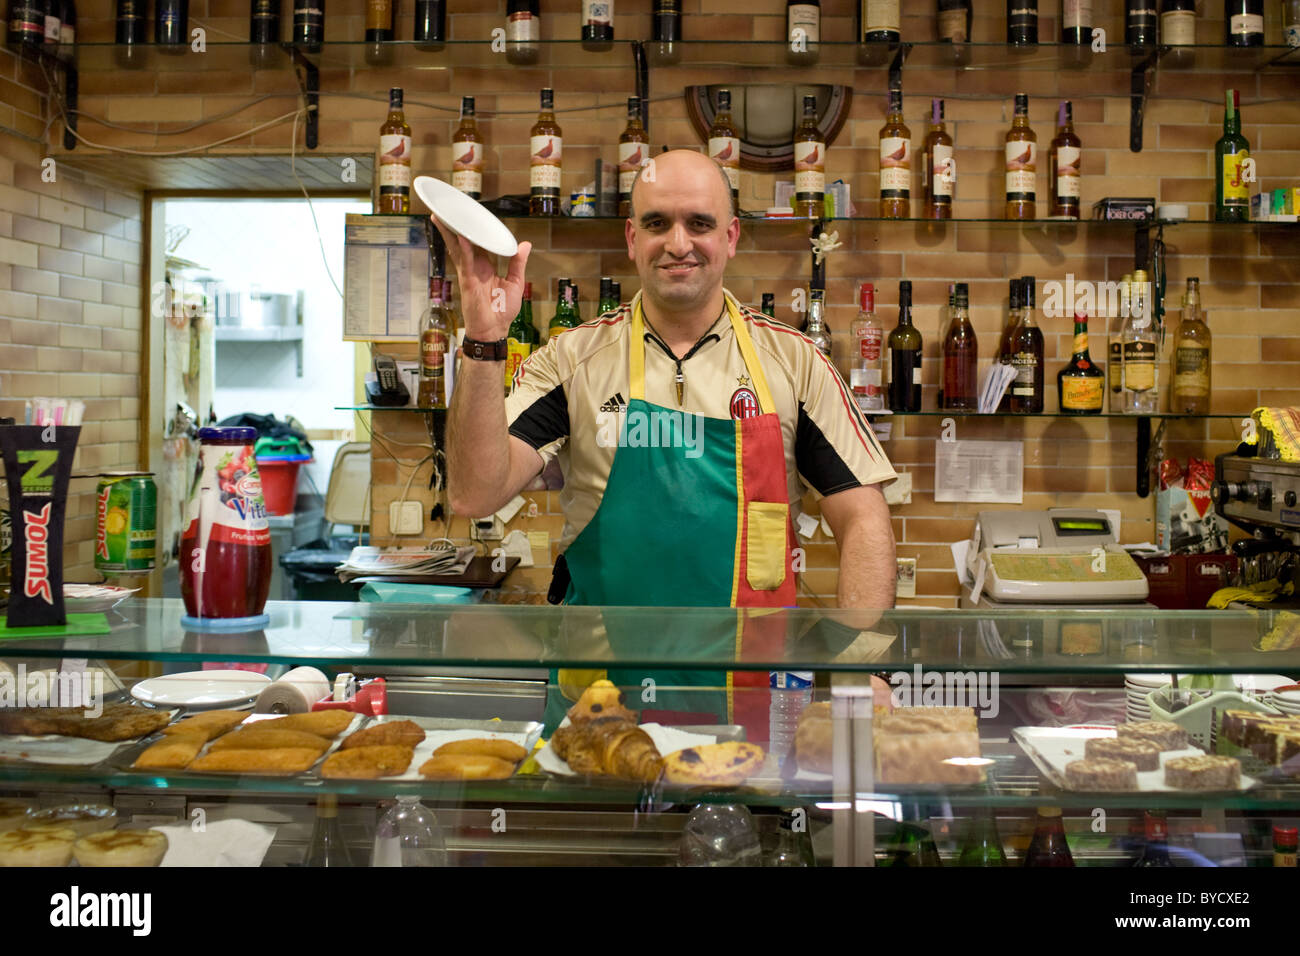 Cafe owner in Mouraria district, Lisbon, Portugal - Stock Image